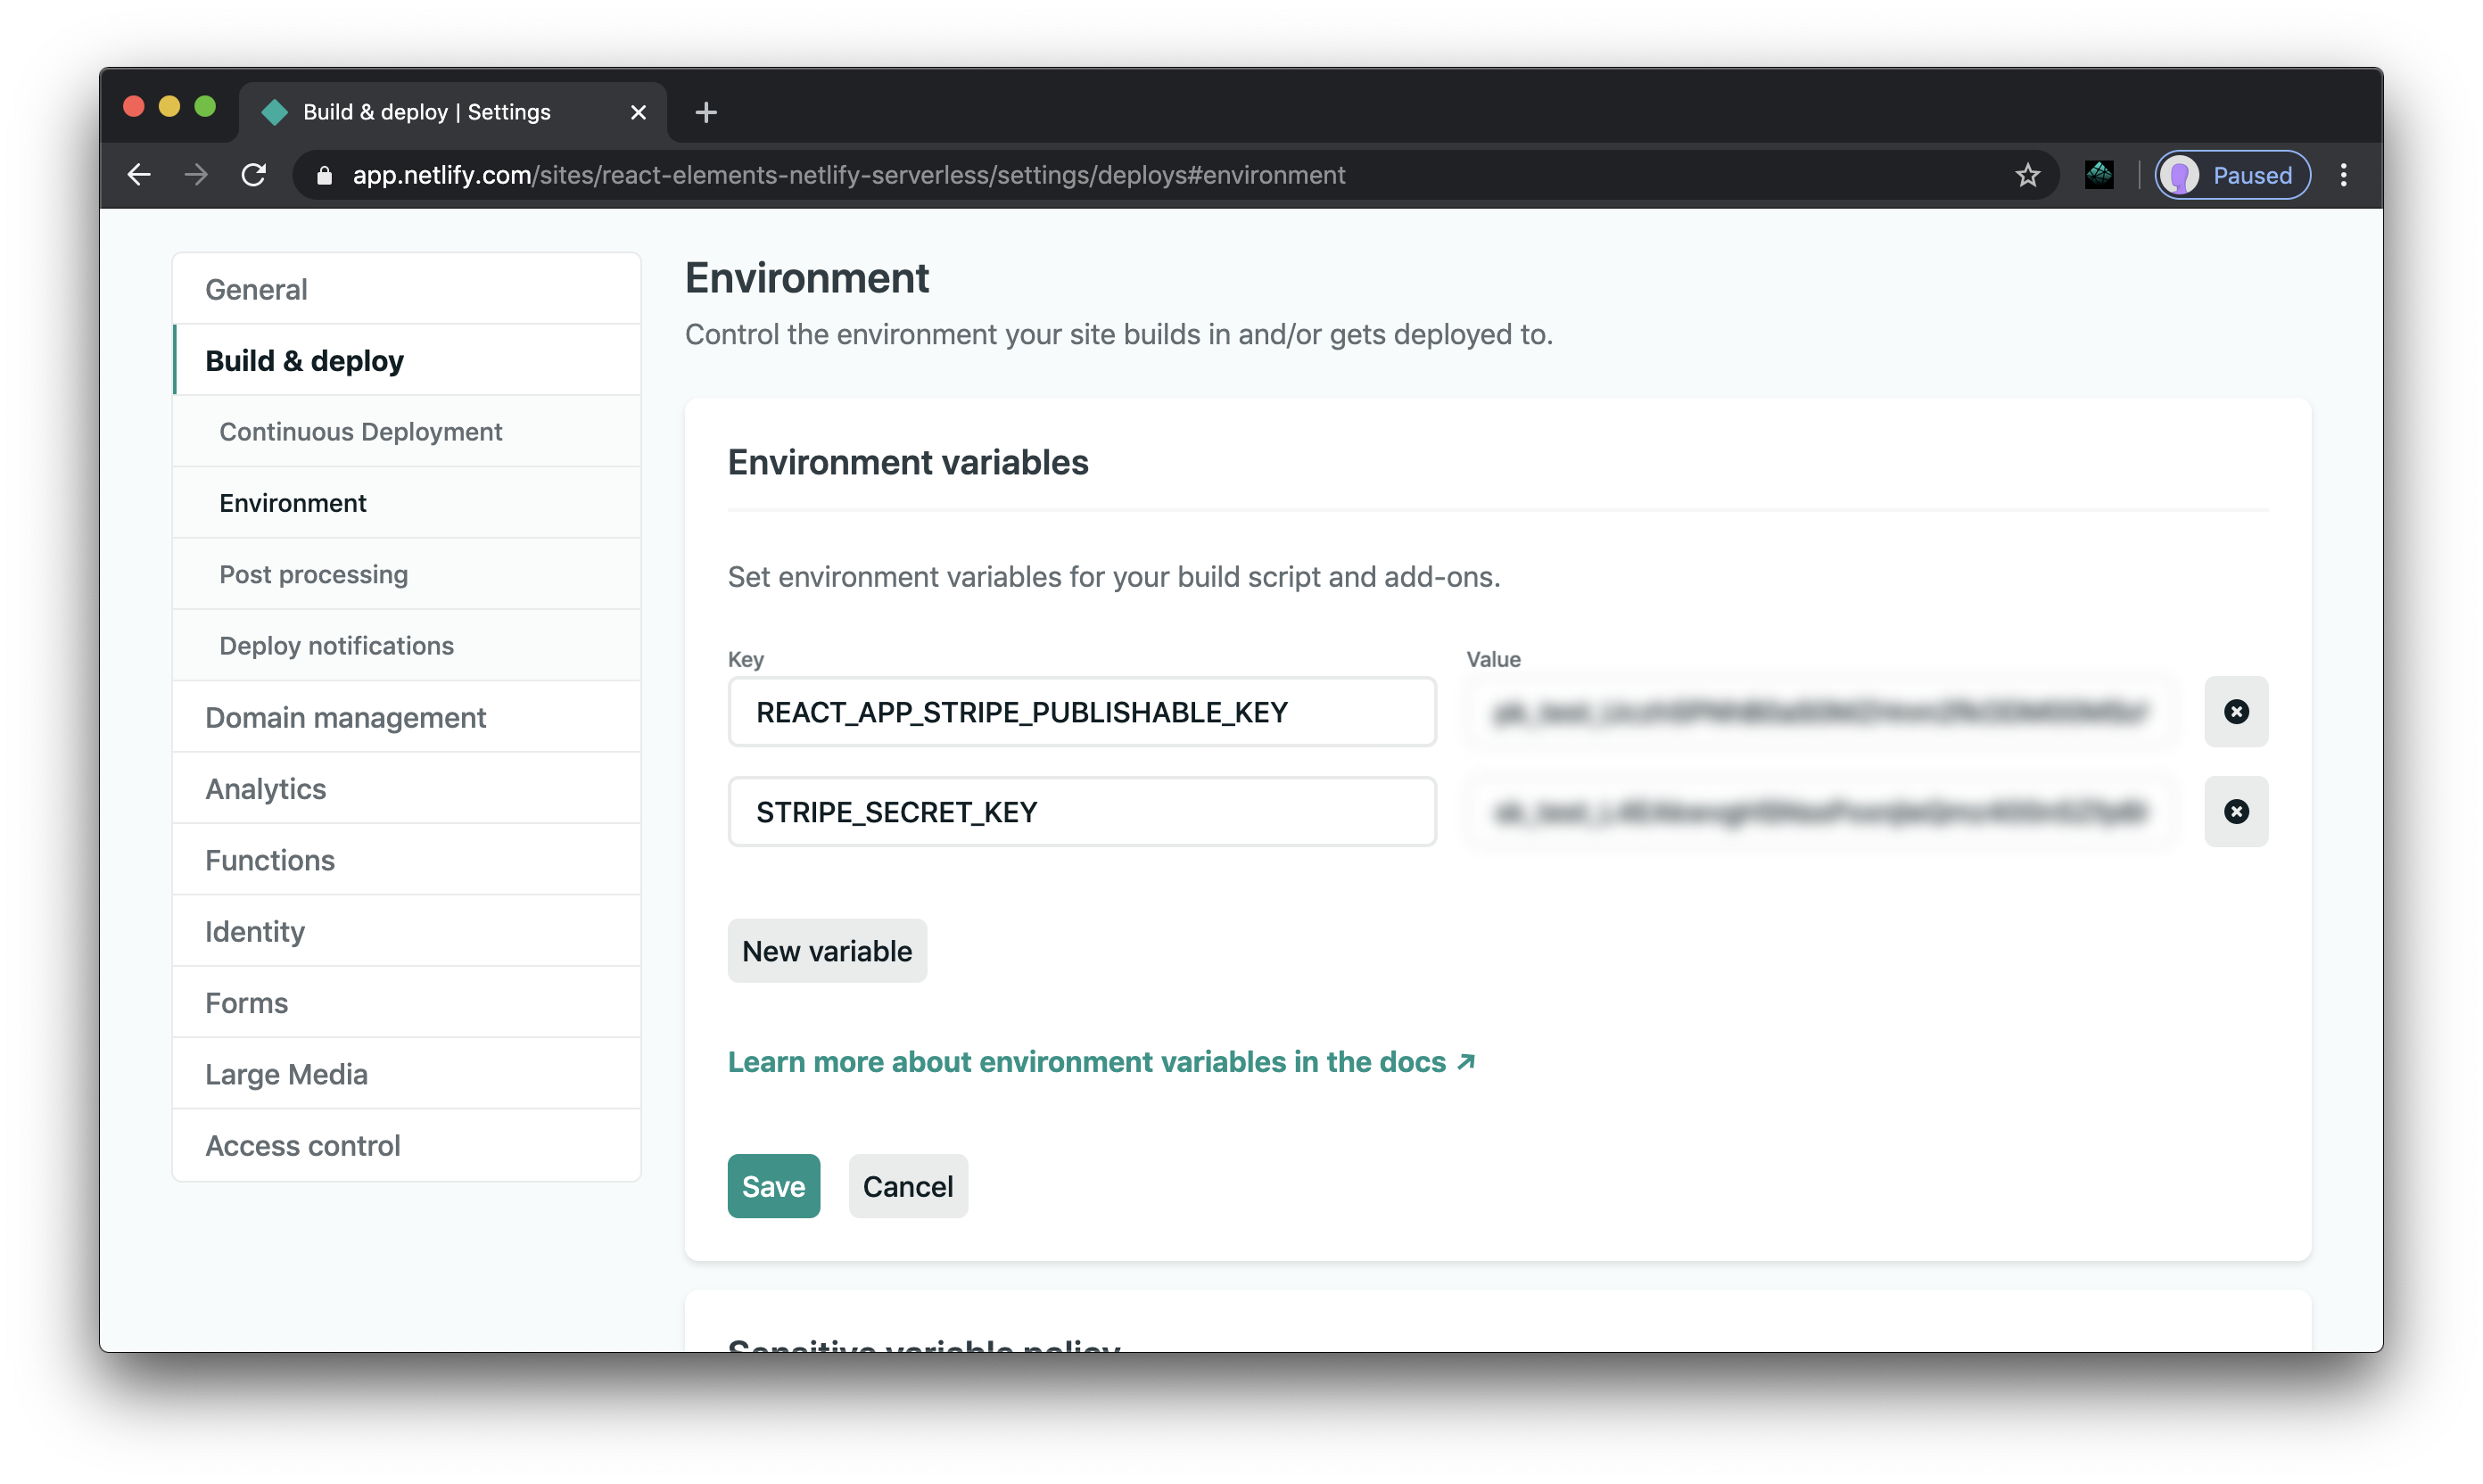 The environment variables section of your Netlify dashboard